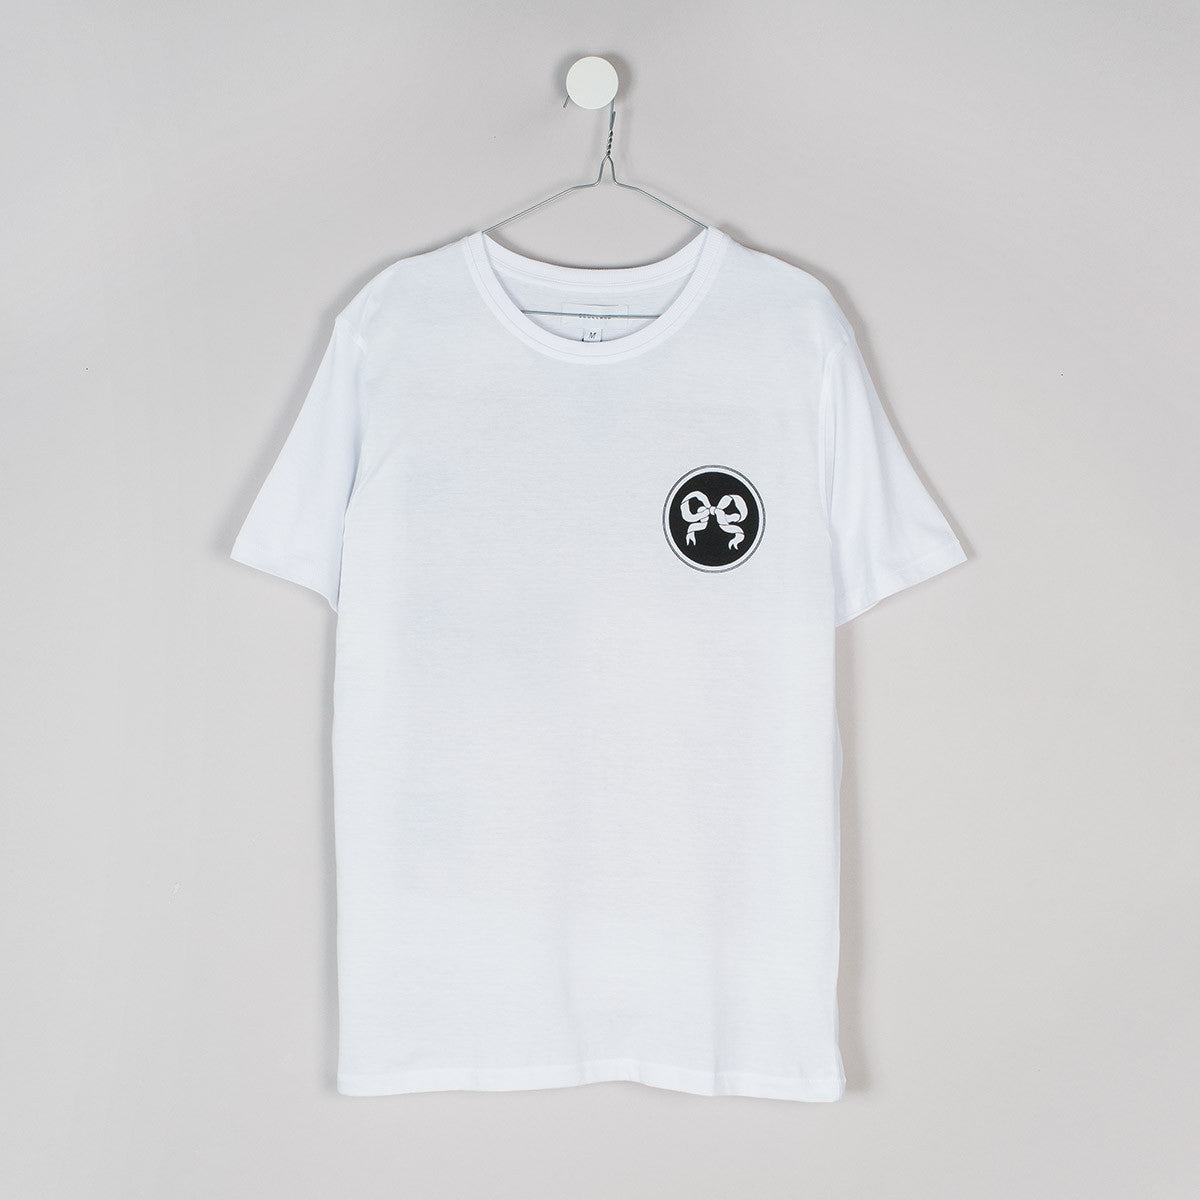 Soulland Ribbon T-Shirt – White - 1